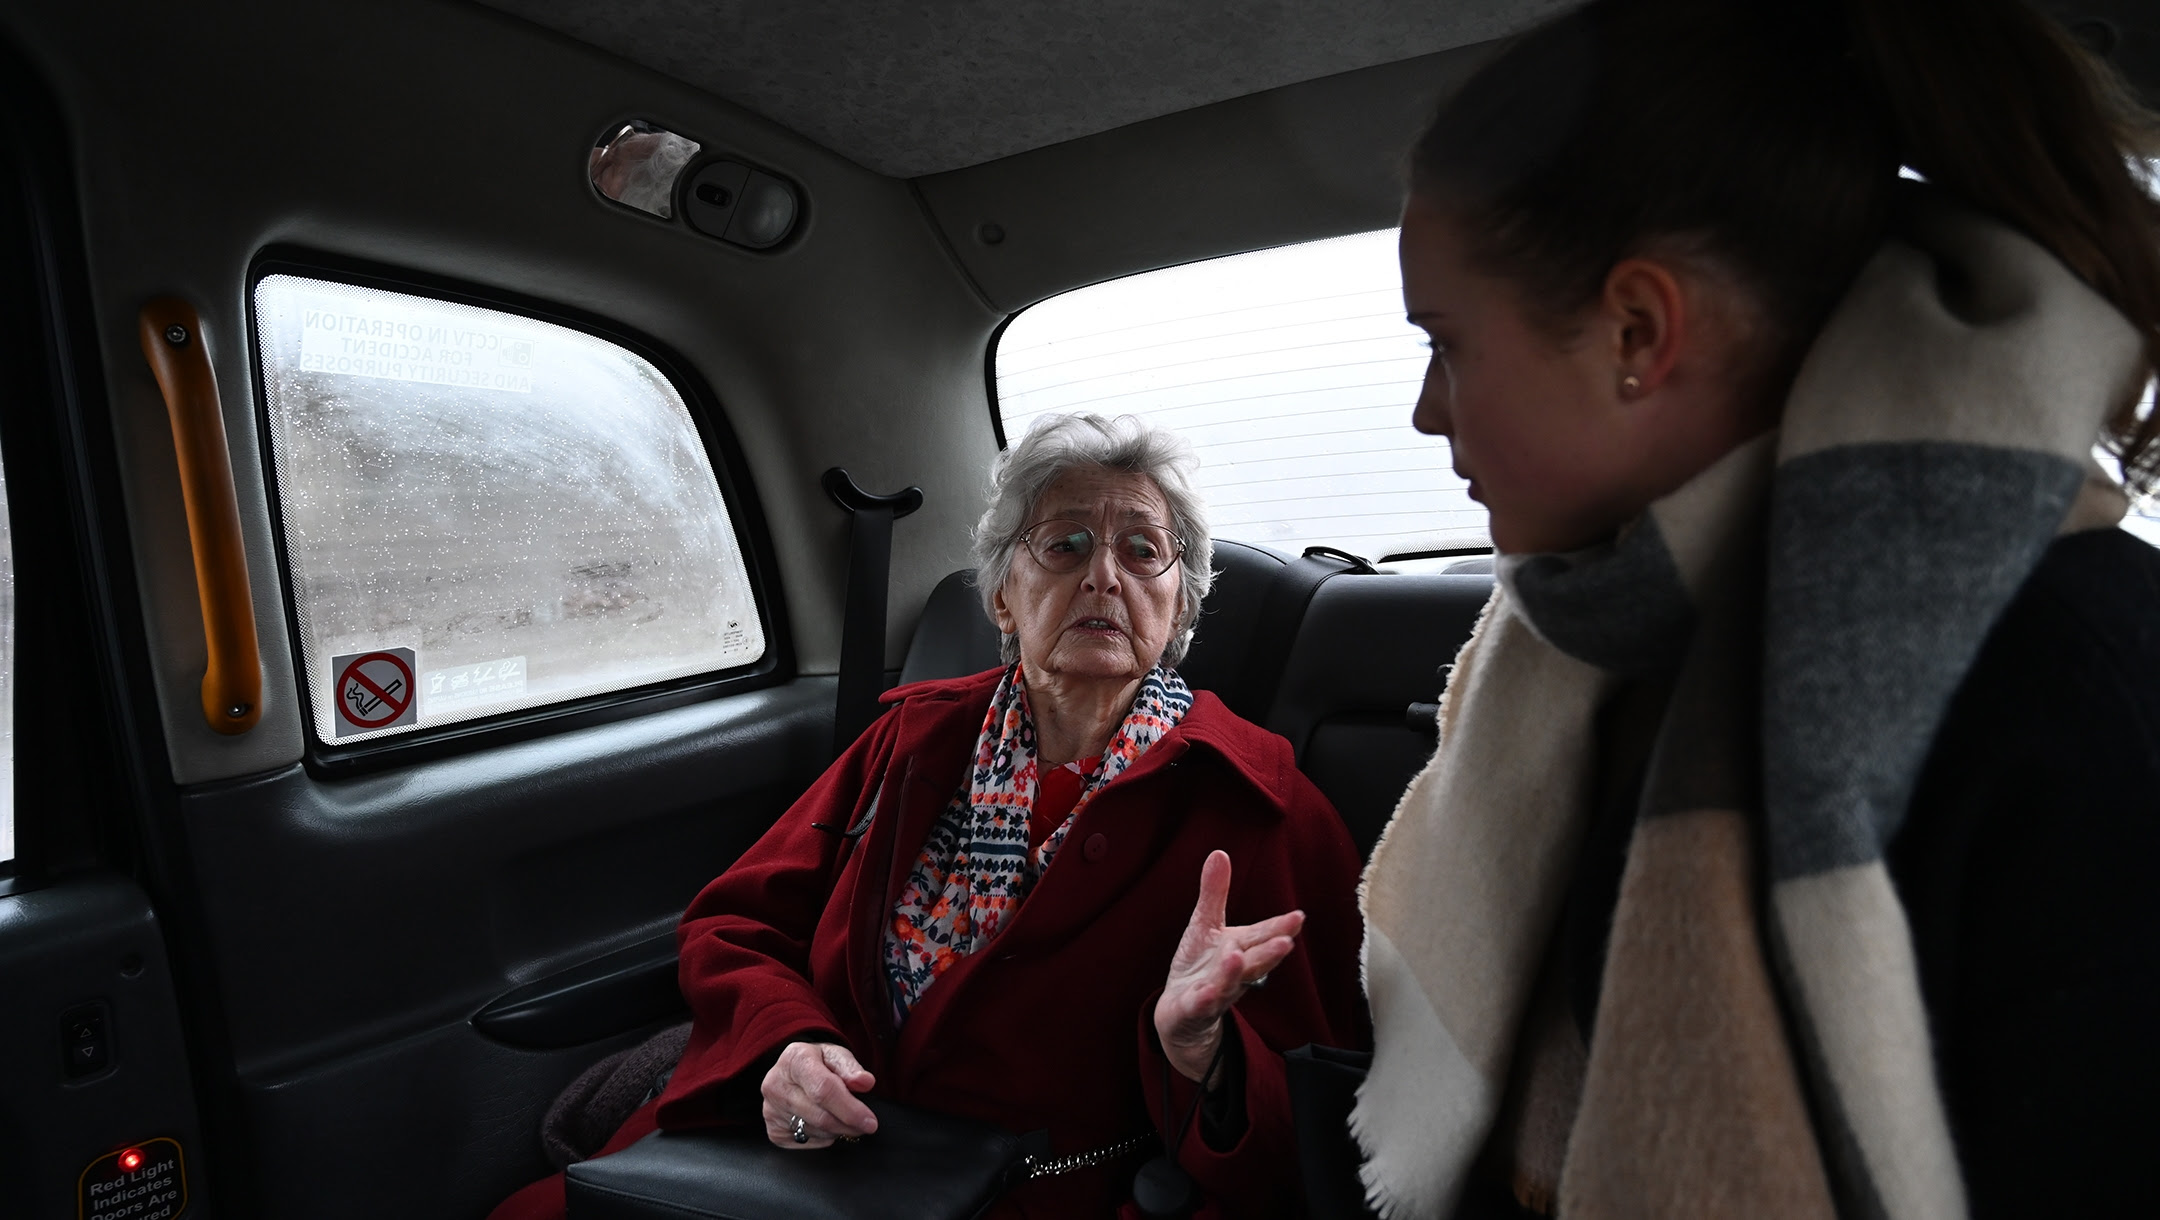 Anna Stupnicka-Bando, the 90-year-old president of the Polish Association of the Righteous Among the Nations, inside one of the From the Depths taxis for saviors of Jews in Warsaw, Poland on Jan. 29, 2020. (Cnaan Liphshiz)